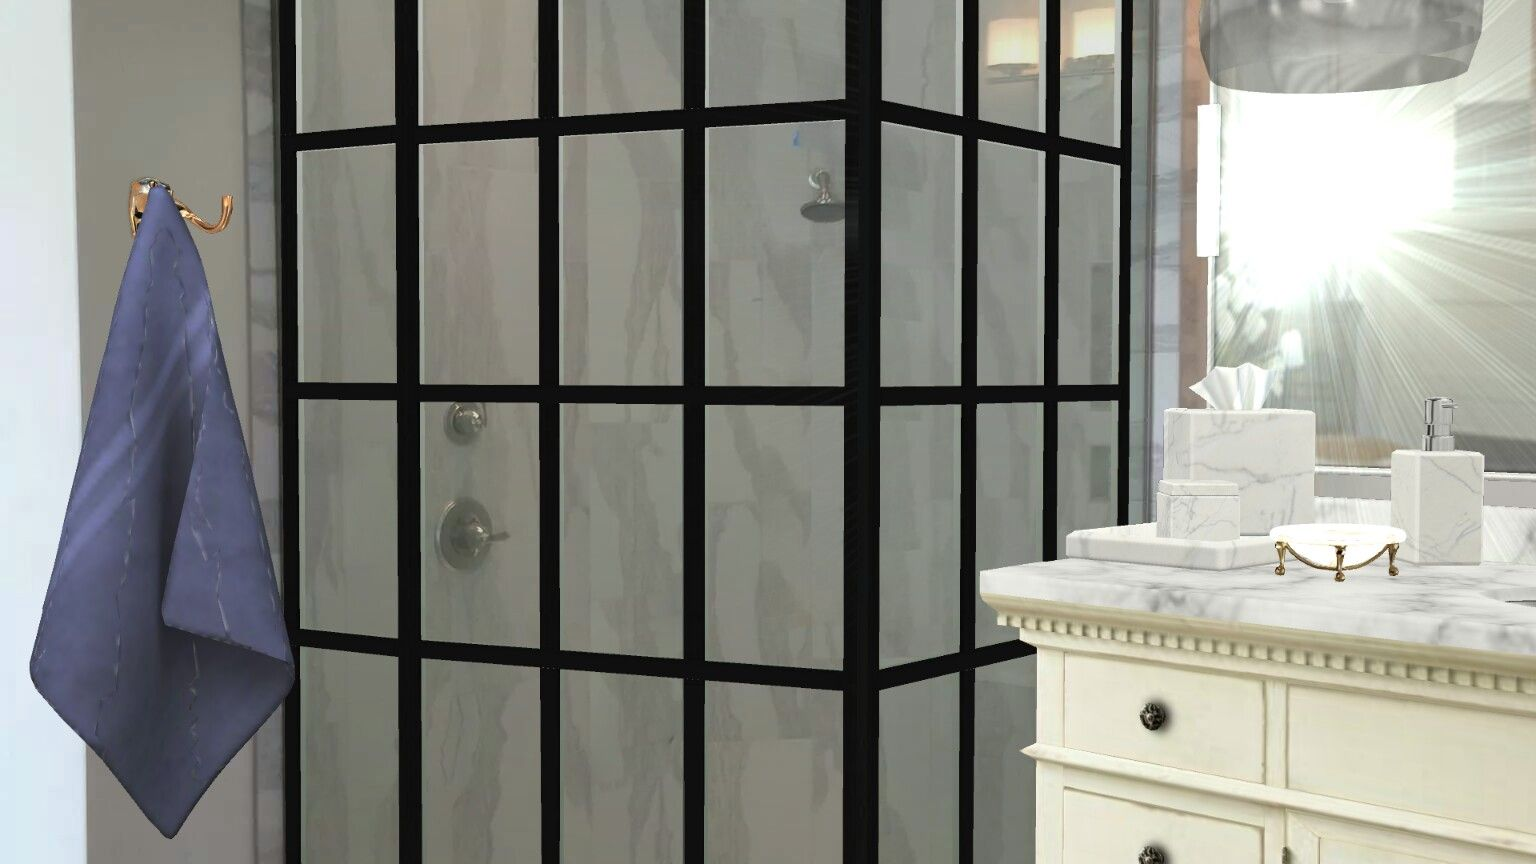 gridscape series custom factory windowpane shower door by coastal shower doors via homestyler